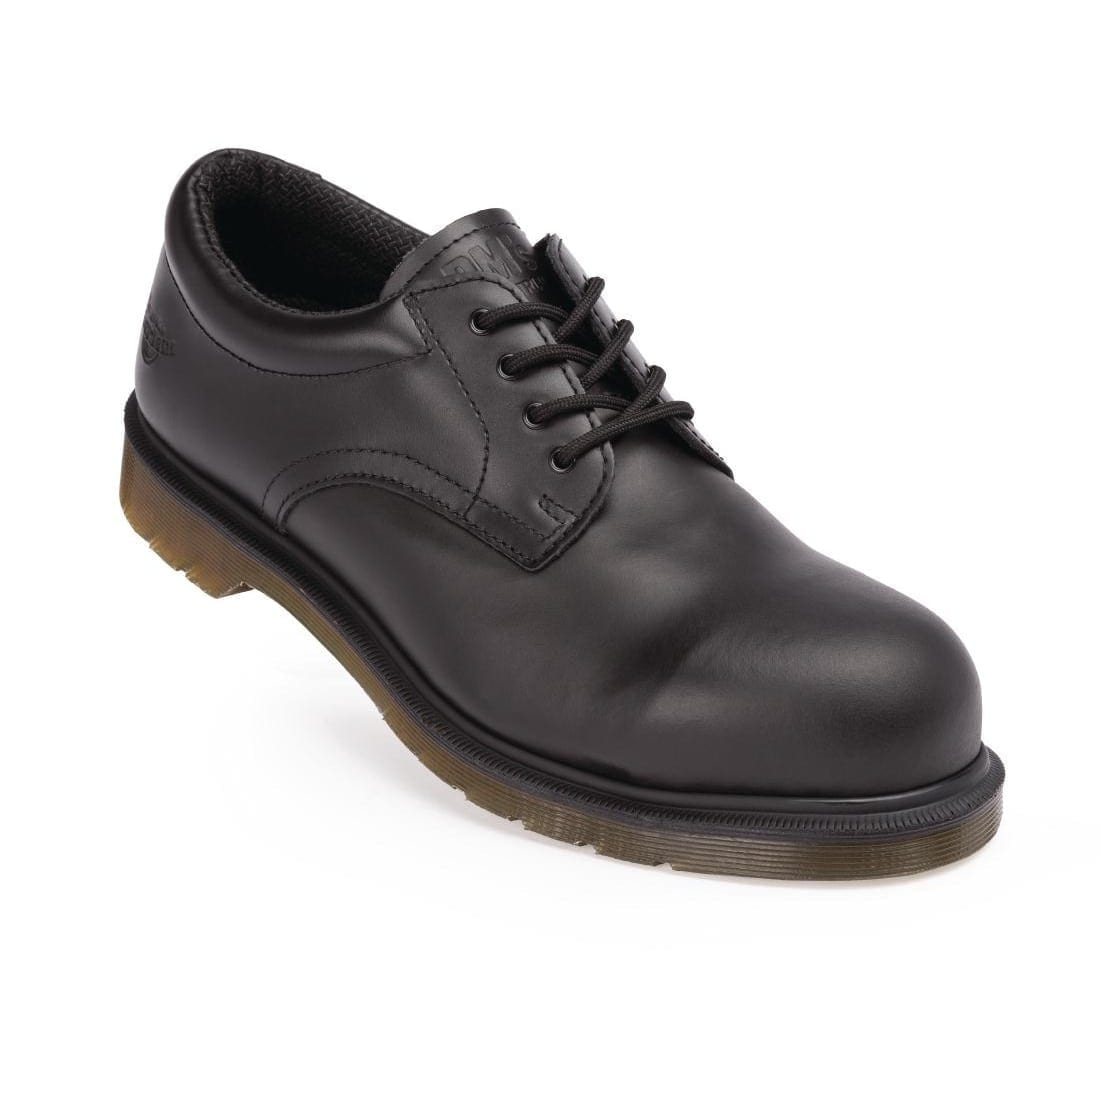 Dr Martens Classic Black Icon Safety Shoe - Size 42-0